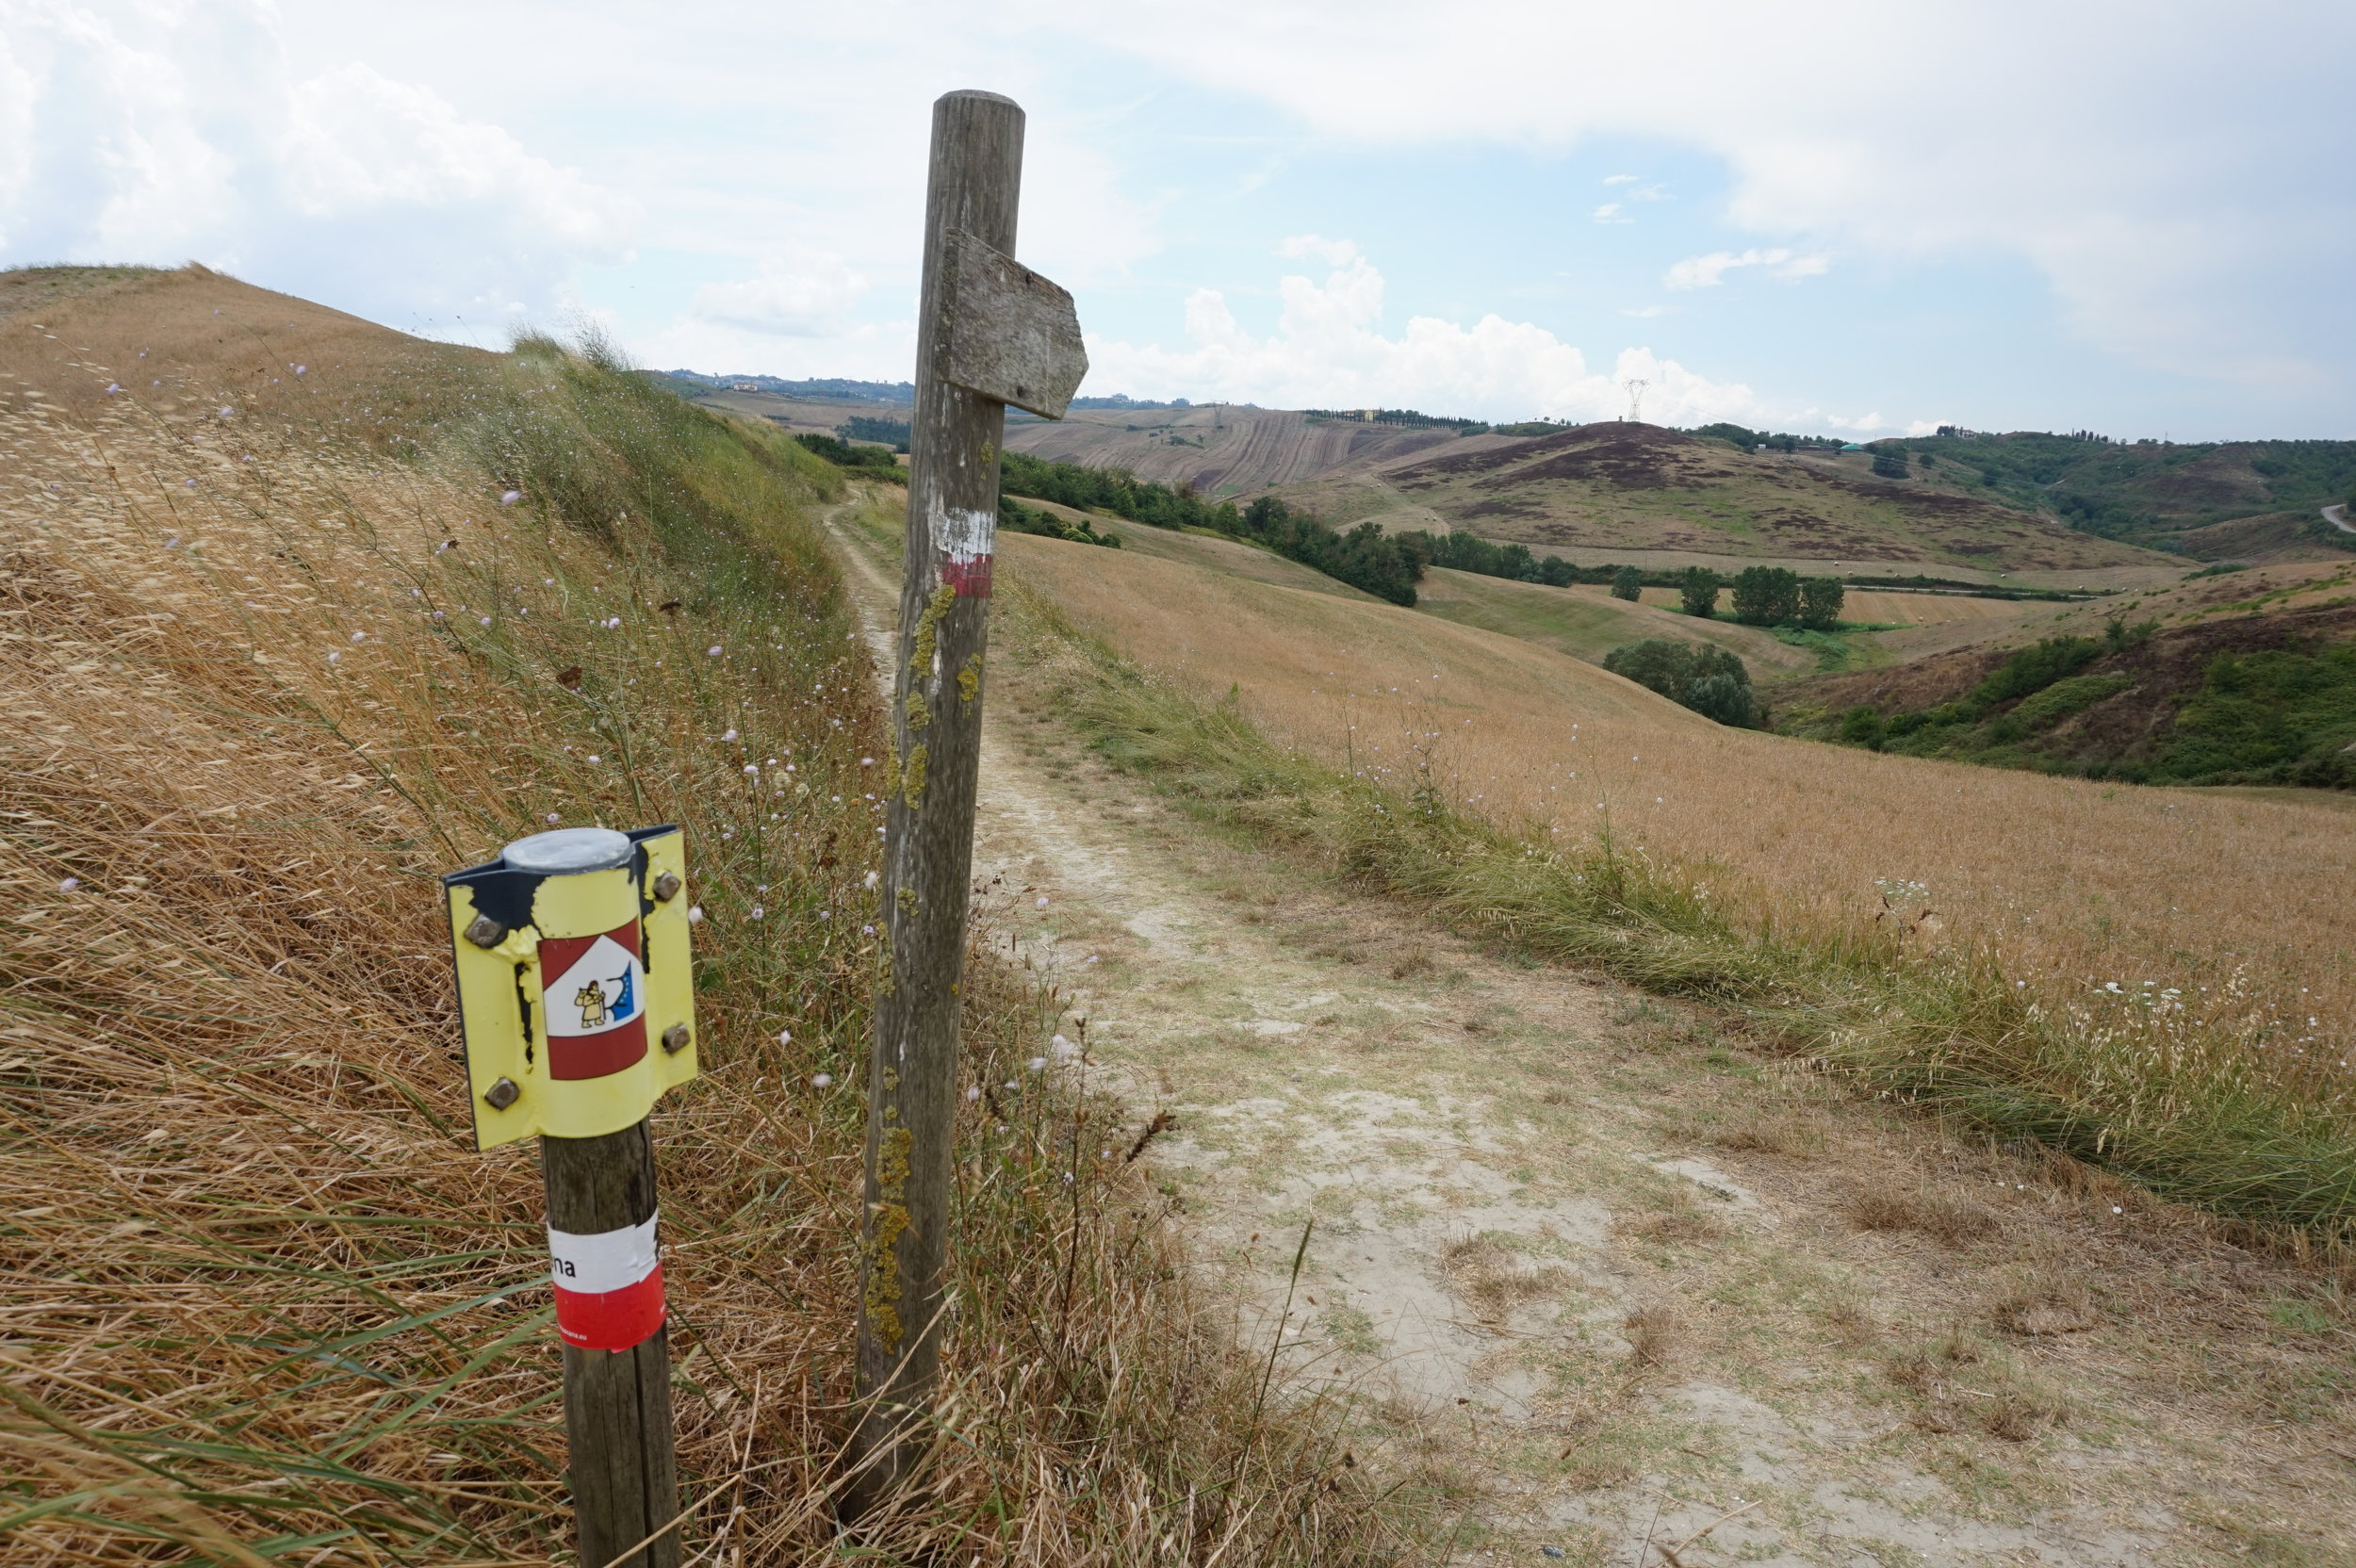 Hiking in Tuscany, Via Francigena